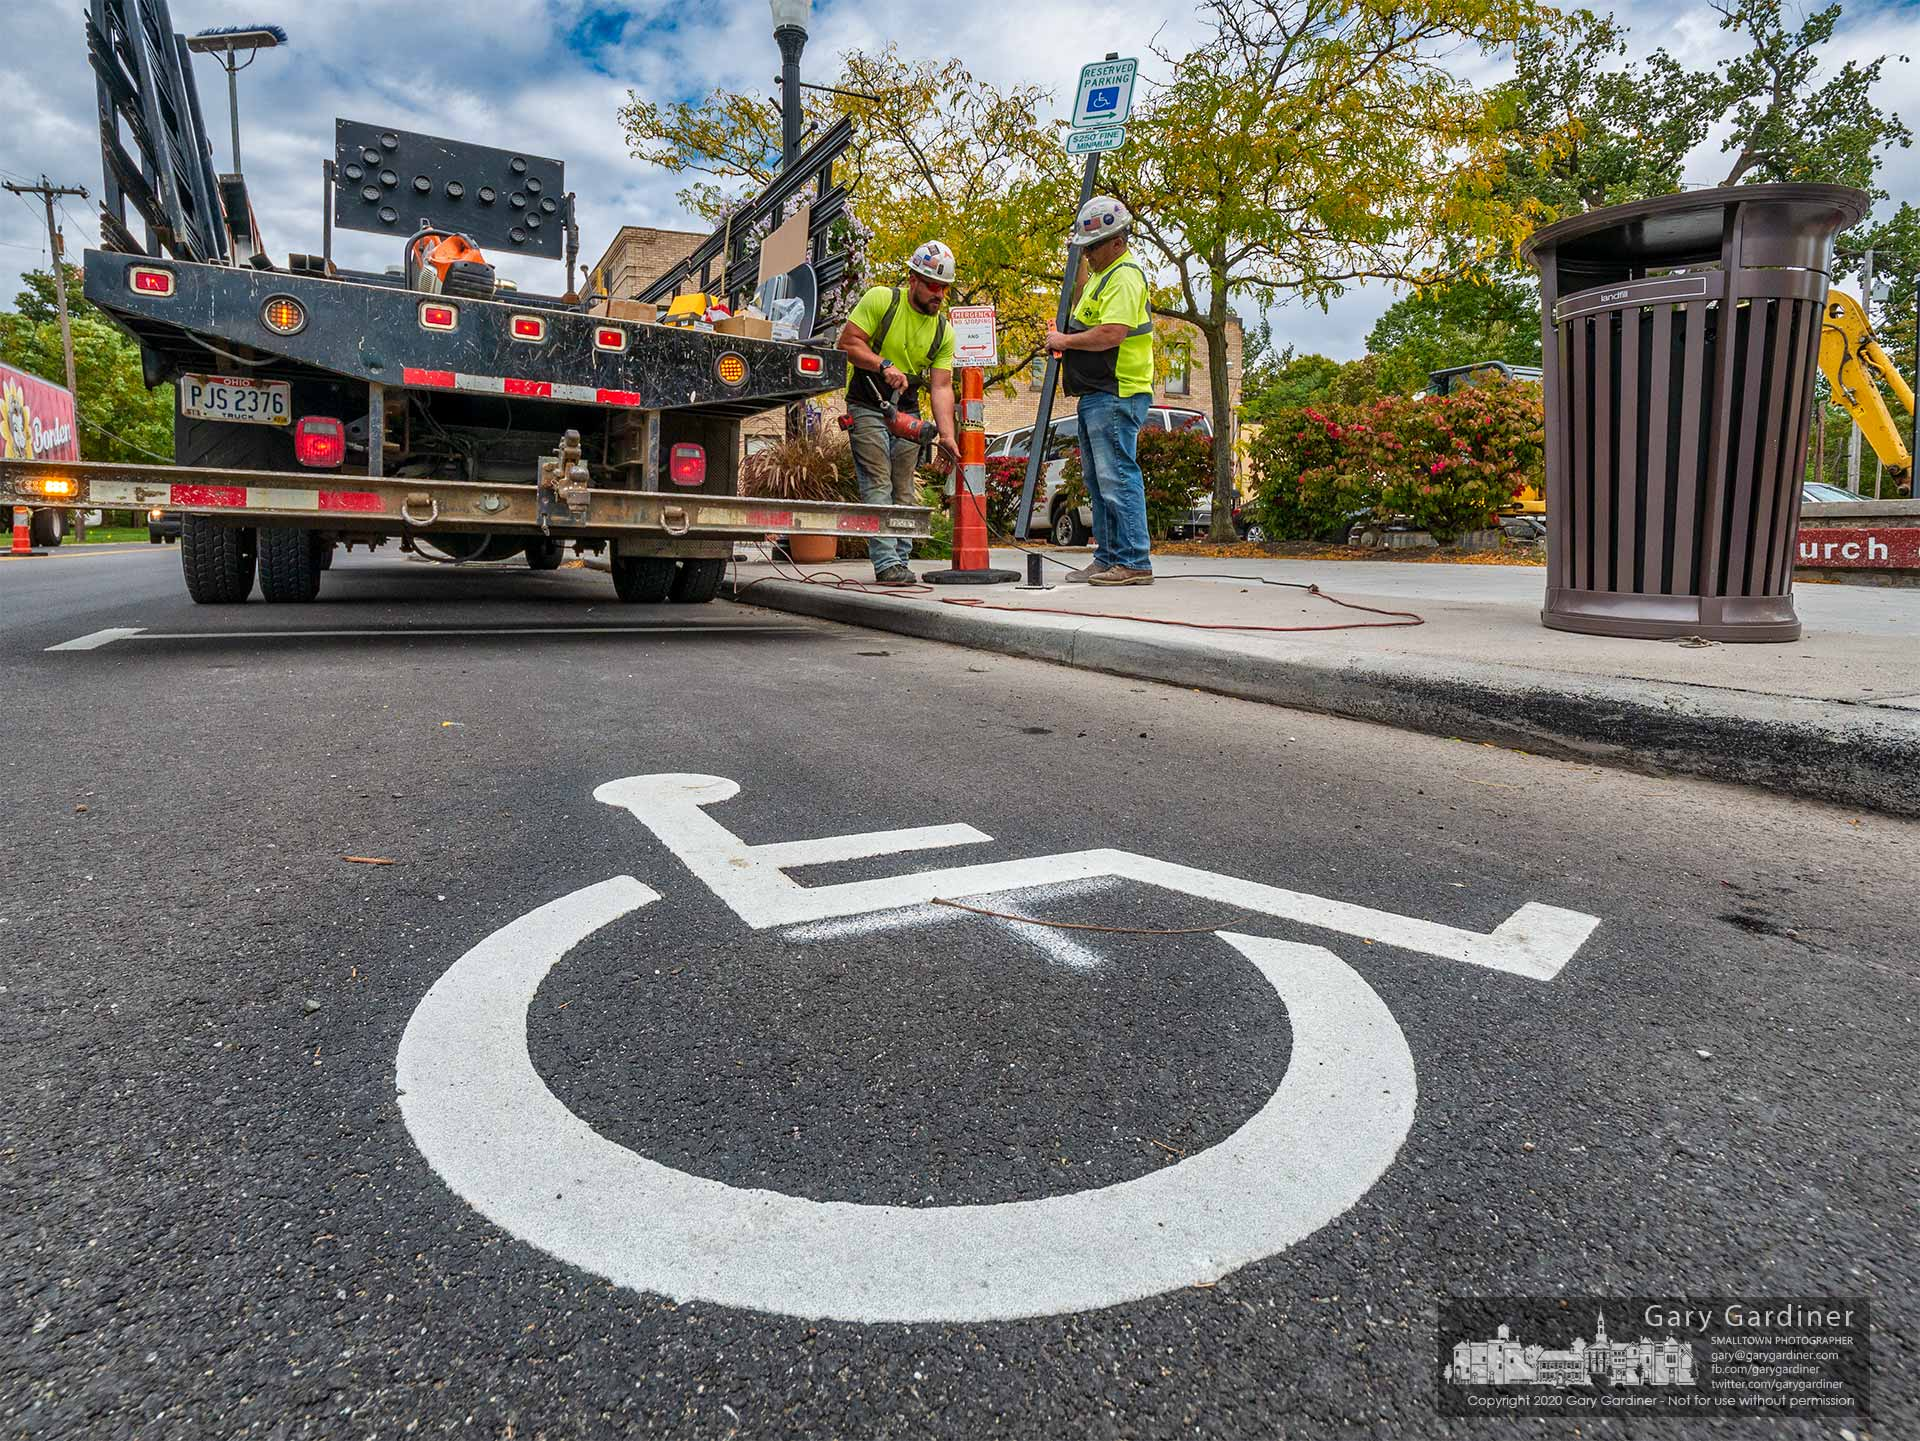 Workers install handicap signs marking the new parking spots in Uptown Westerville following completion of rebuilding the road. My Final Photo for Sept. 30, 2020.